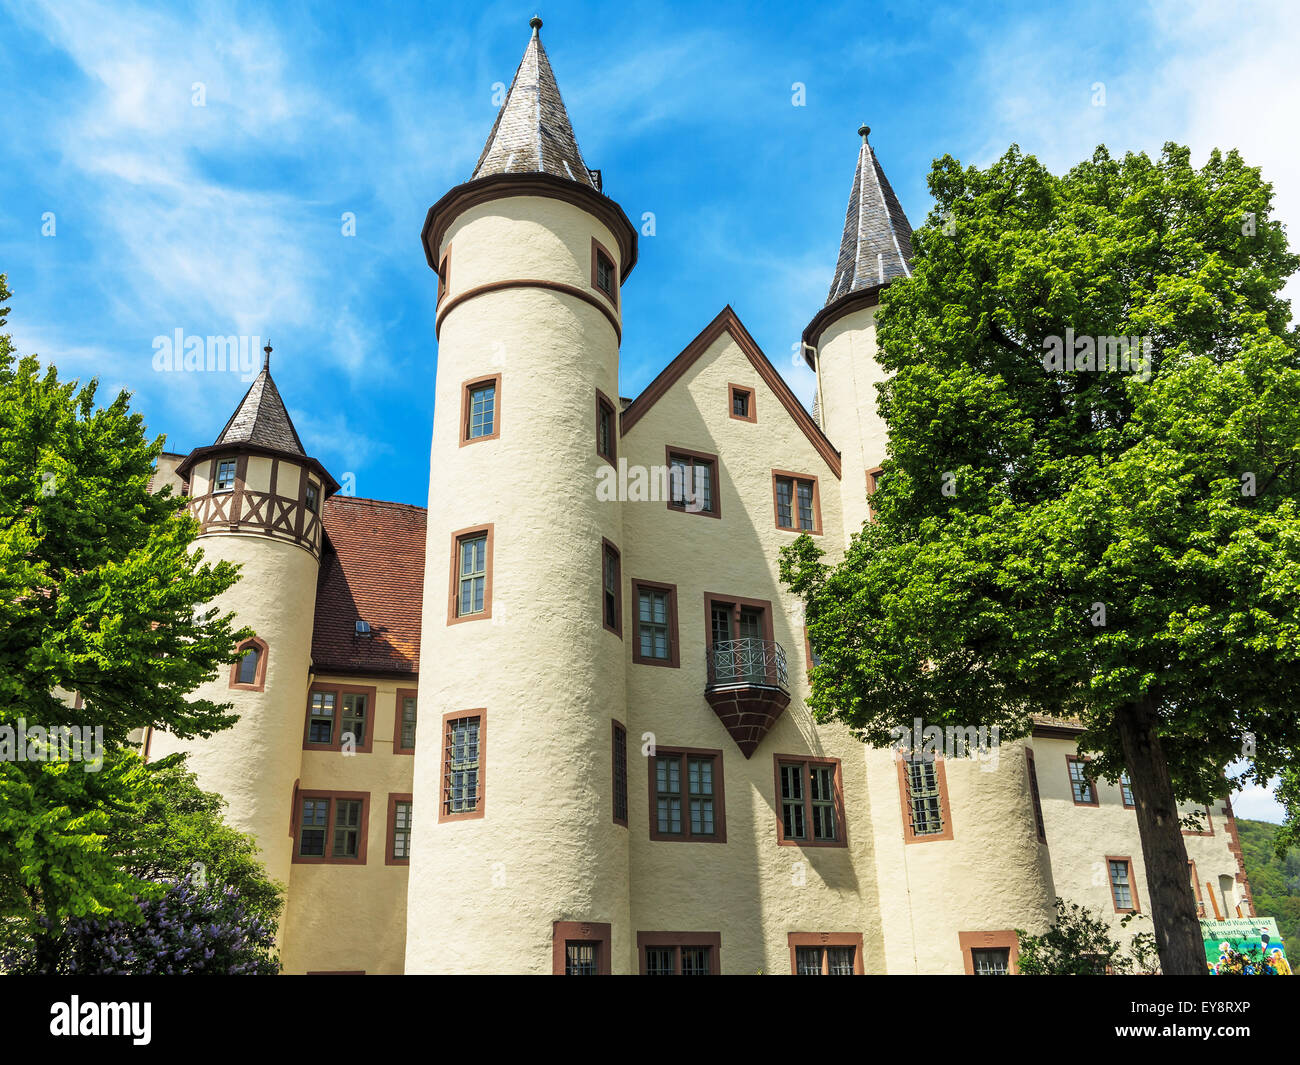 The spessart museum snow white castle in lohr am main for Heimbach lohr am main